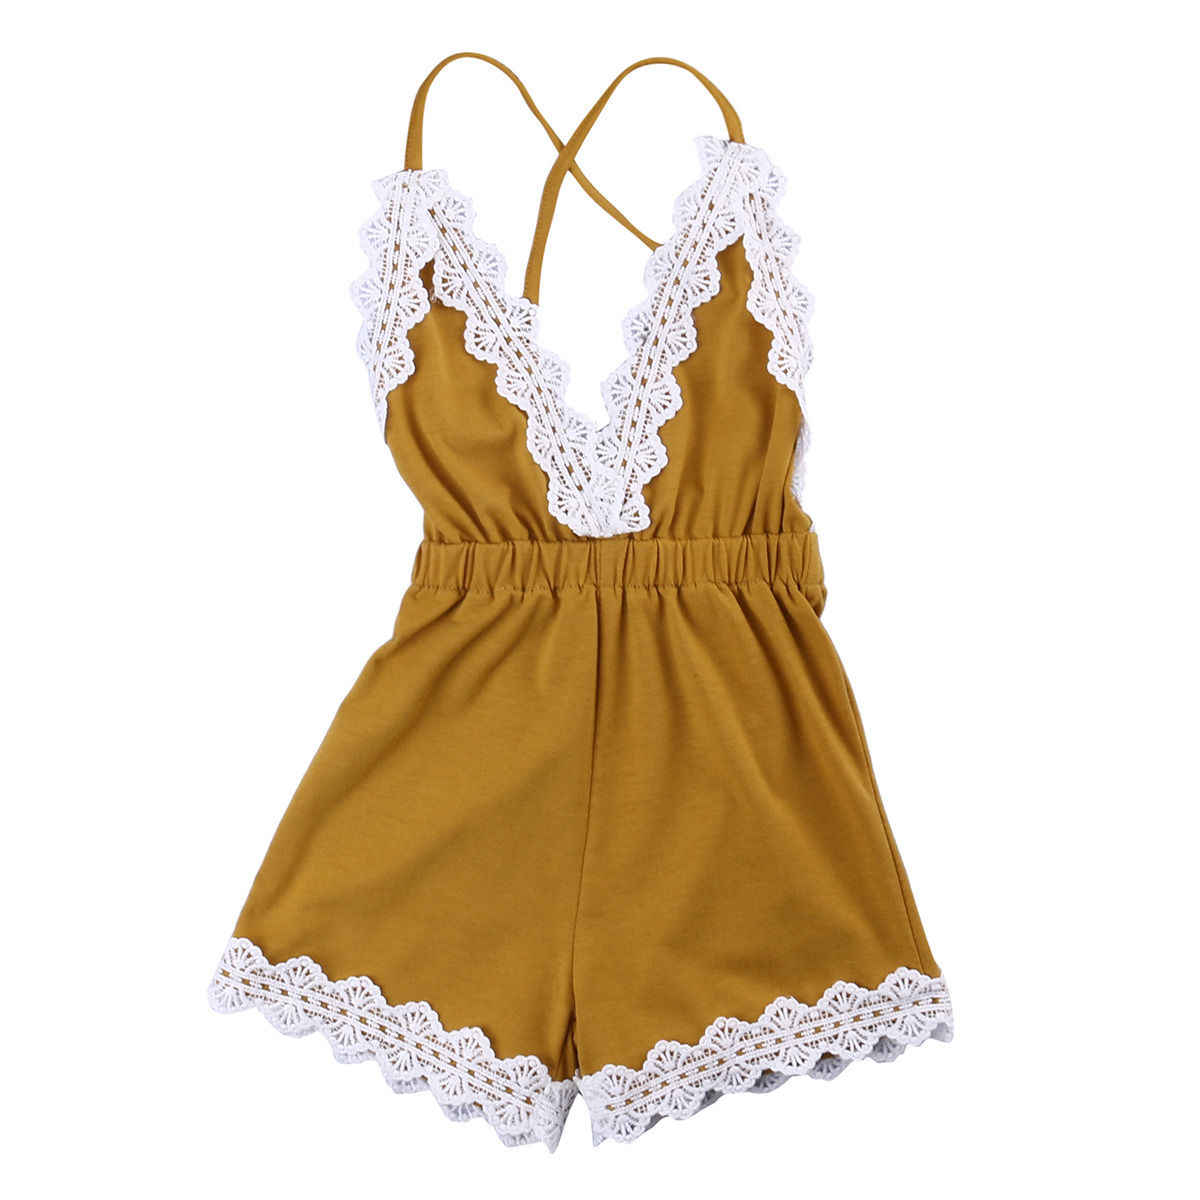 1fb4de1beab Detail Feedback Questions about Infantil Toddler Newborn Baby Girls Strappy  Lace One pieces Cute Romper Jumpsuit Sleeveless Sunsuit Clothes on ...